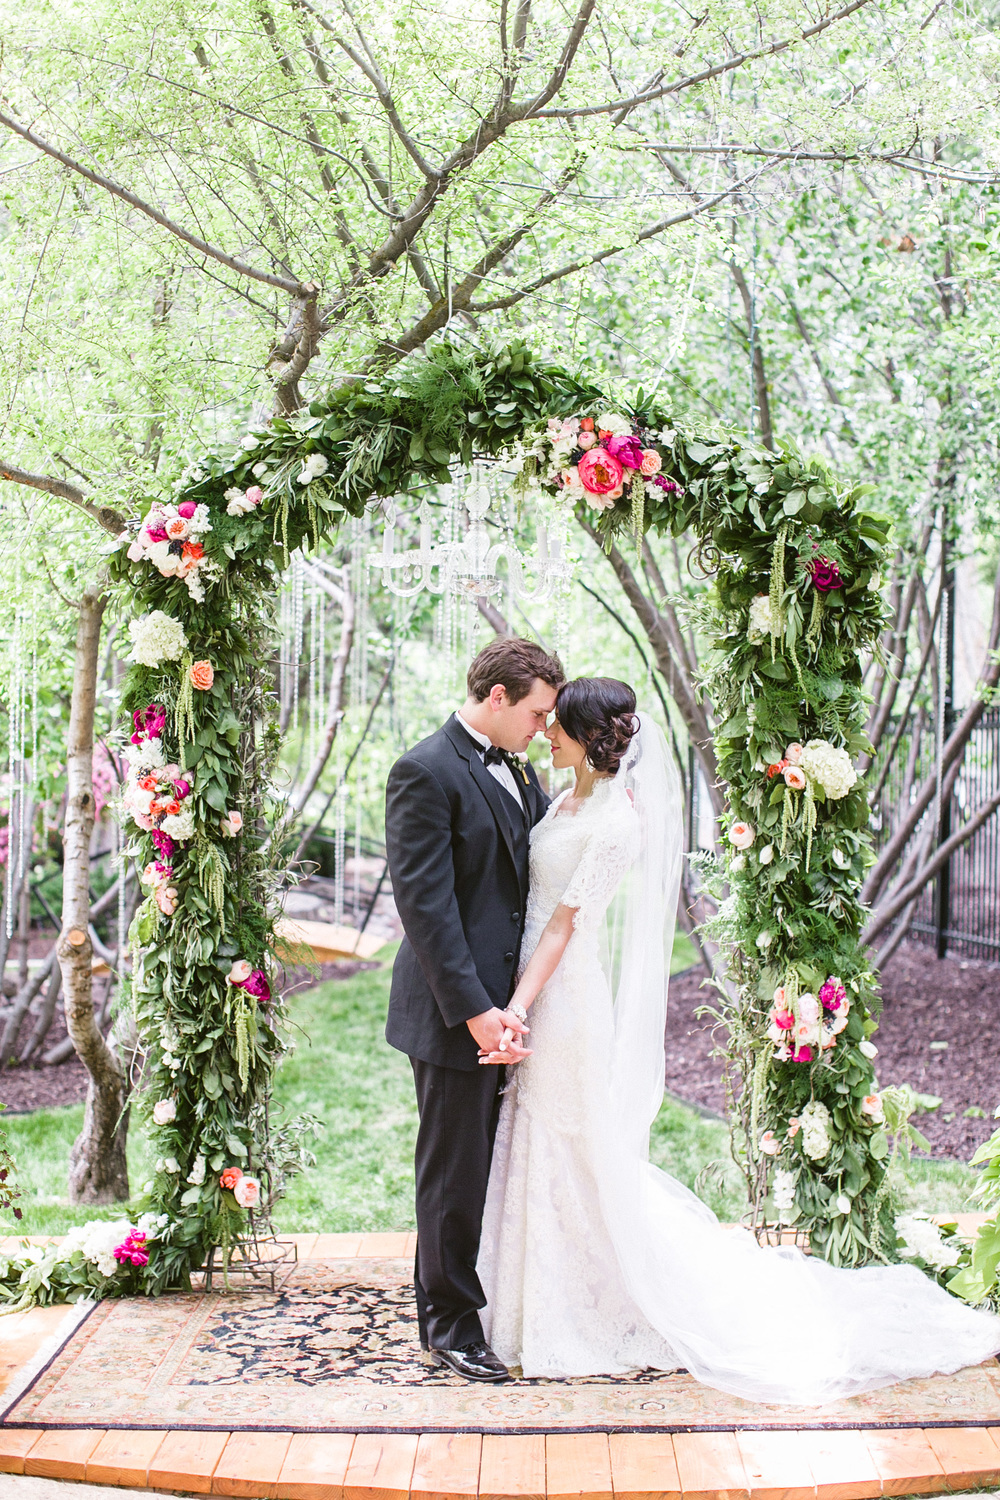 Michelle Leo Events | Utah Wedding Planning and Design